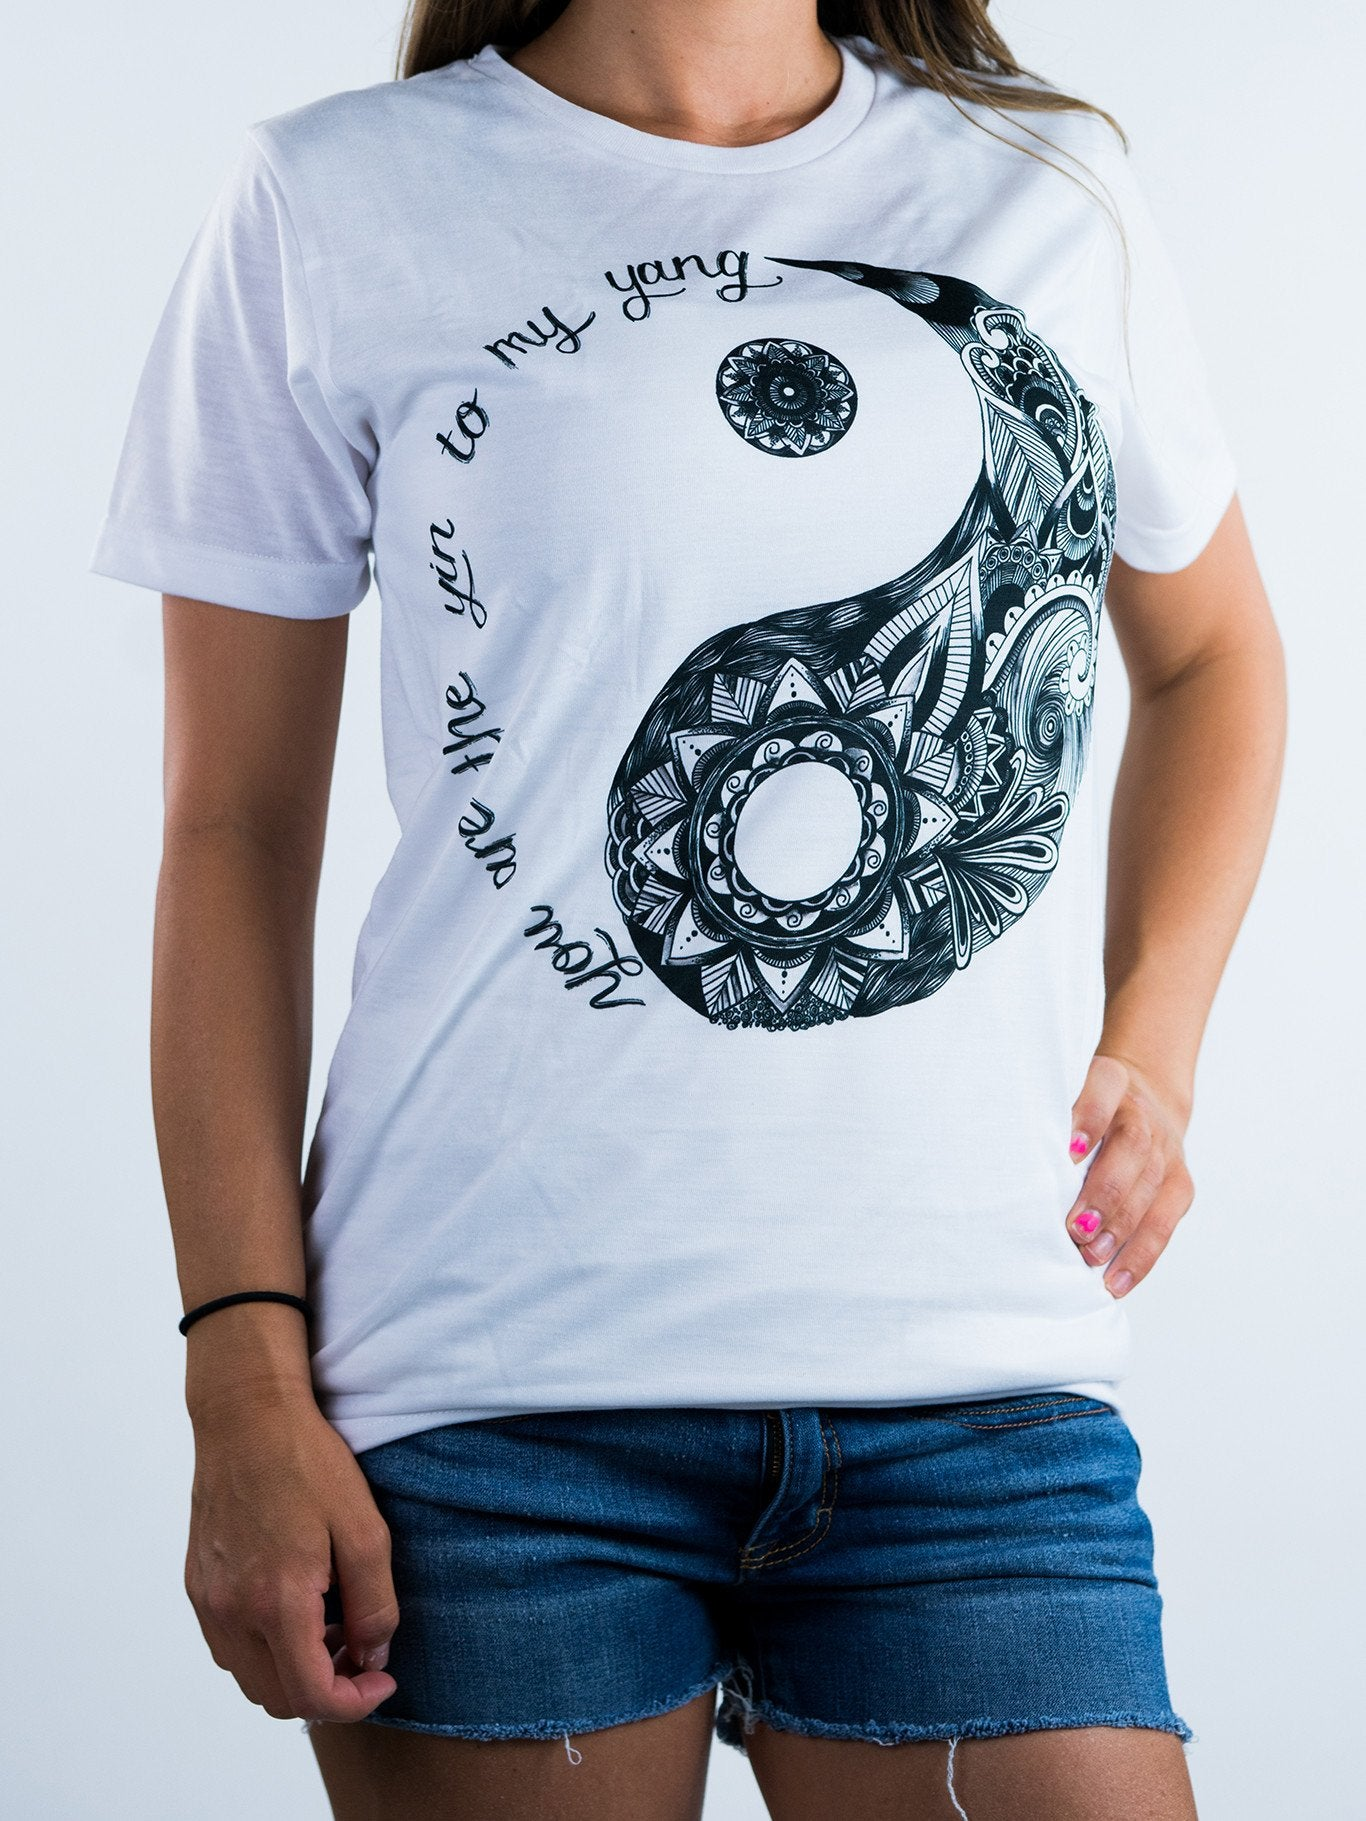 Yin to My Yang Tee - Positive Vibes Clothing